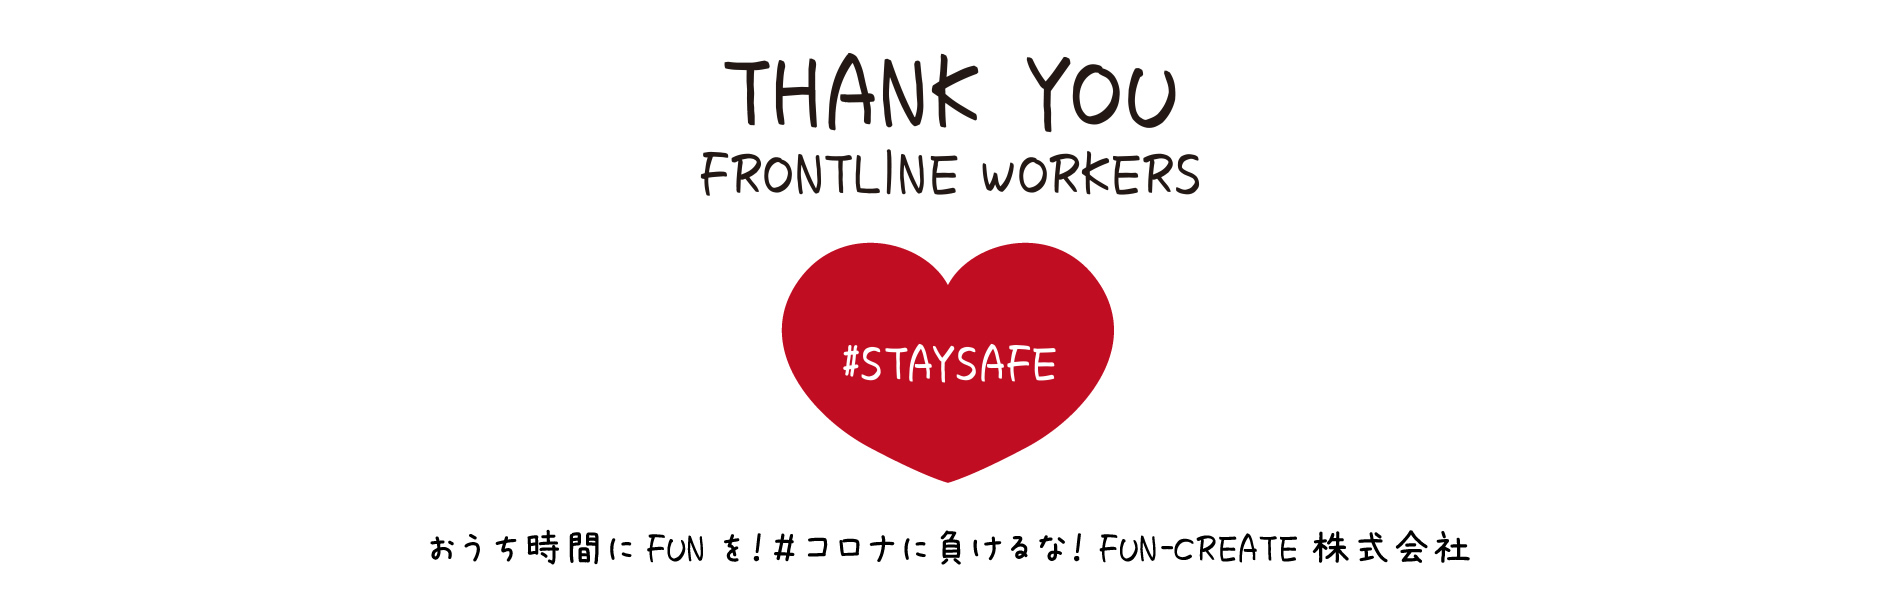 Thank you front workers